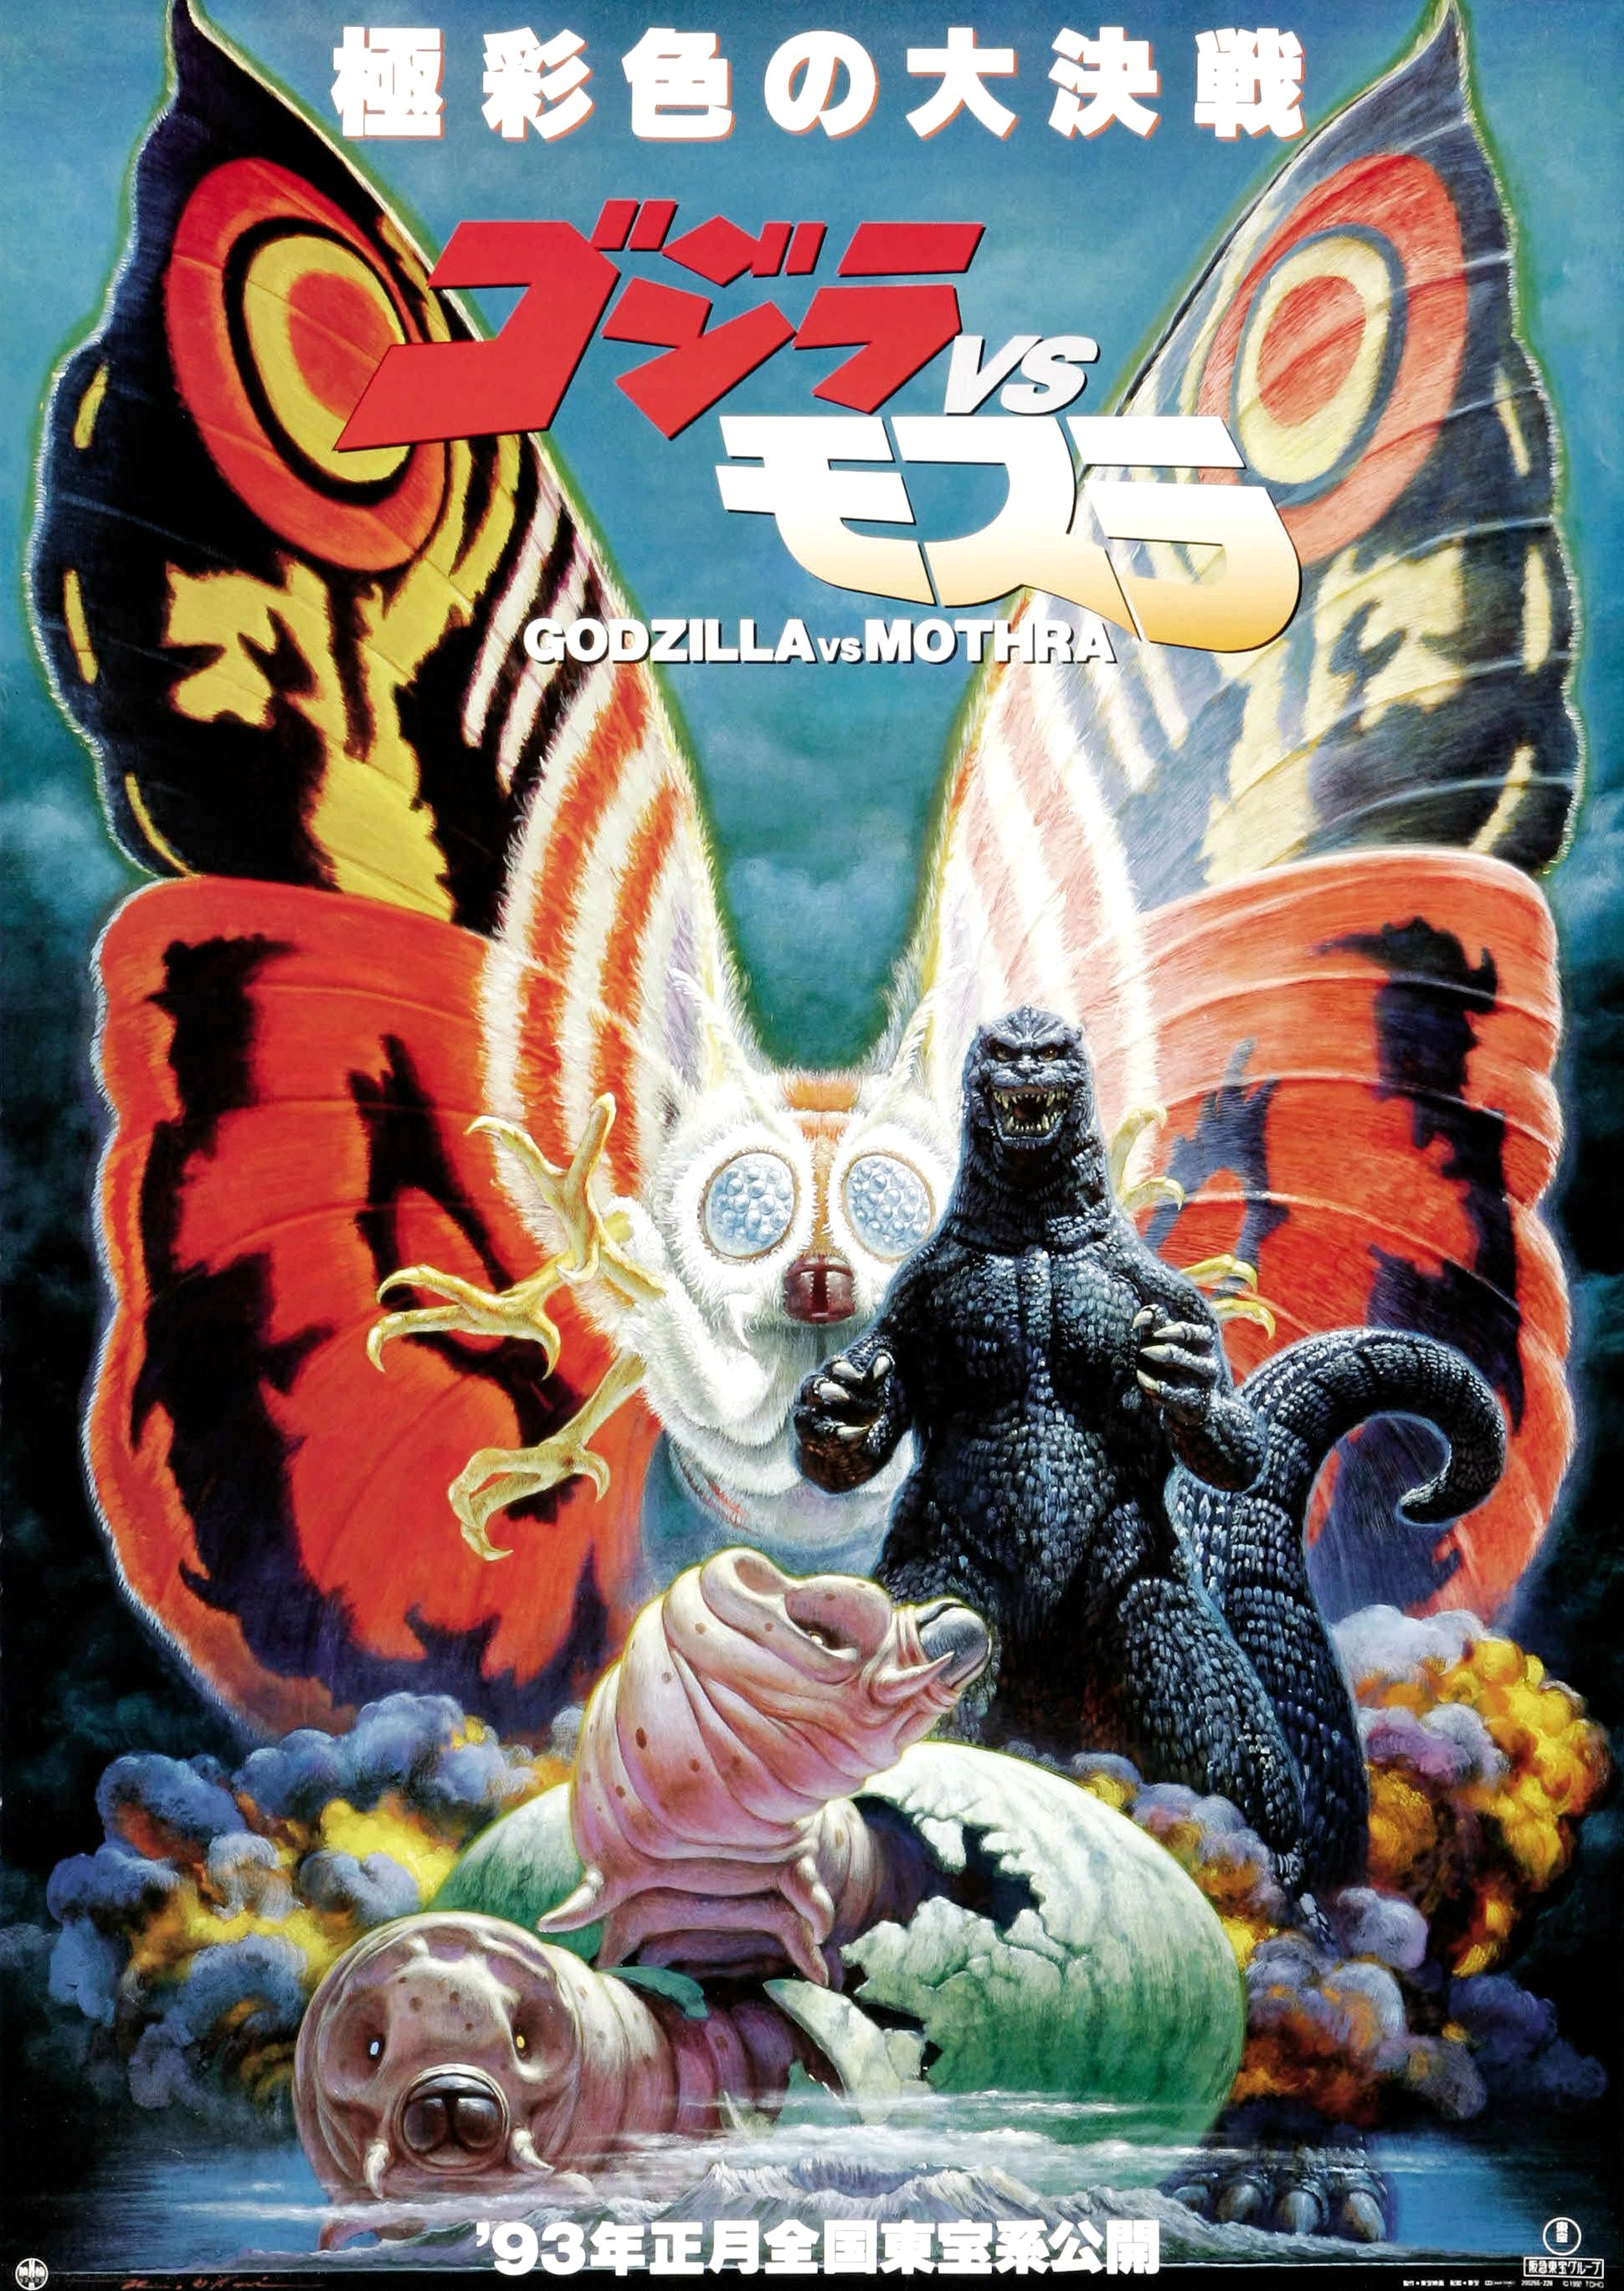 Godzilla vs. Mothra- The Battle for Earth (1992)